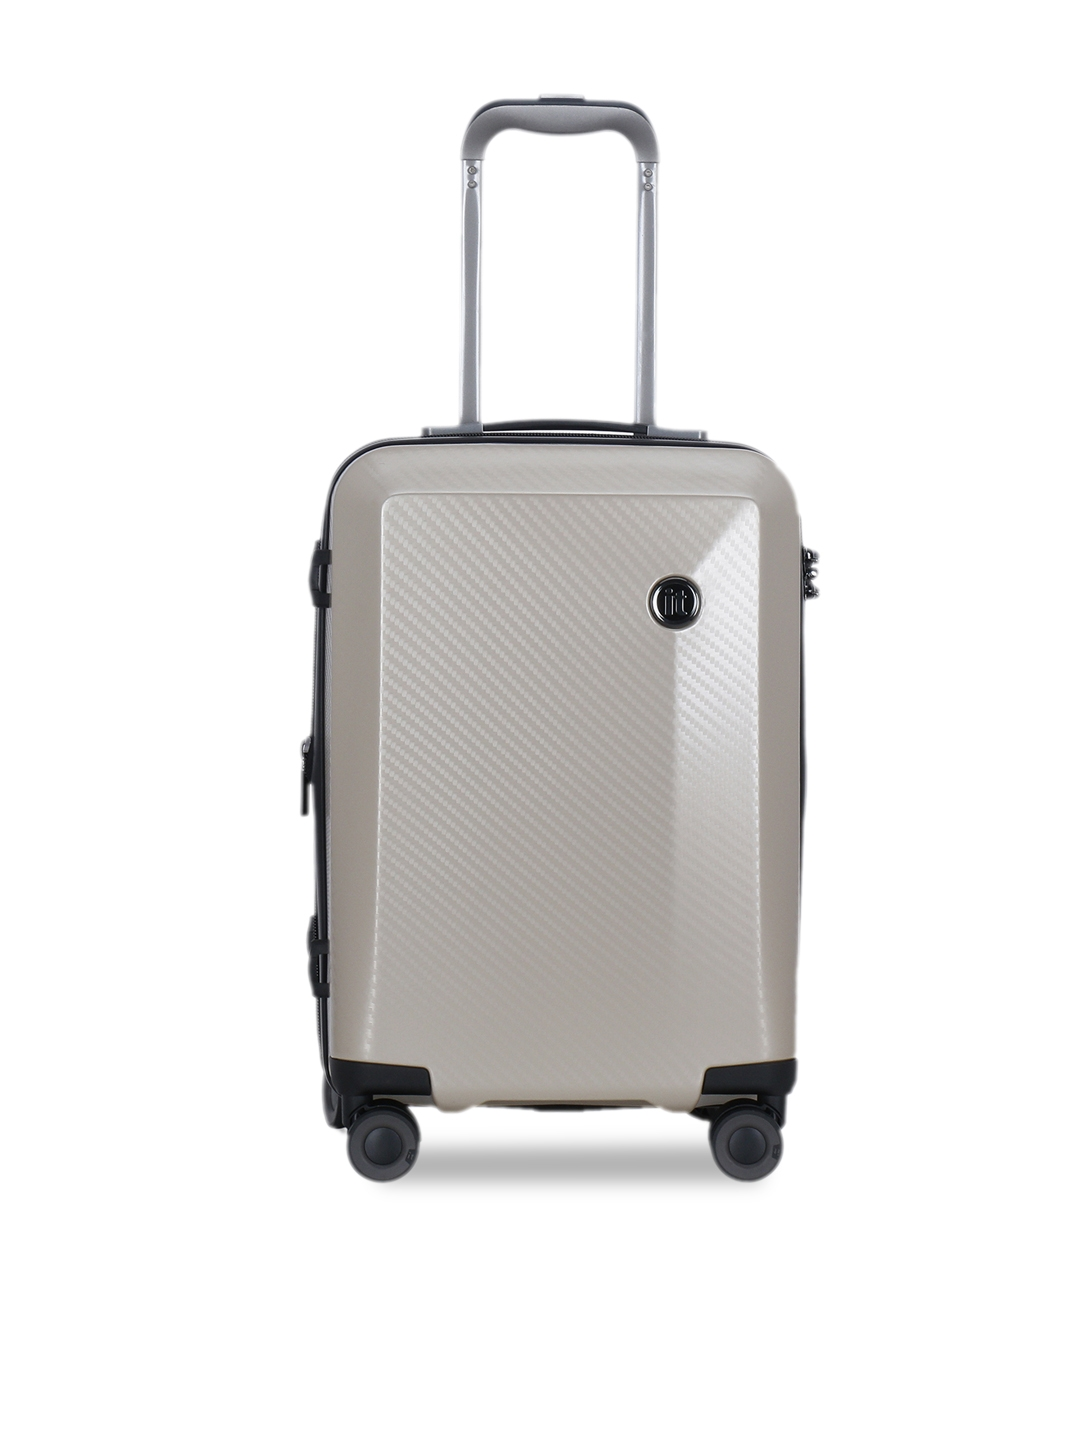 IT luggage Unisex Brown Textured Confide Hard Sided Expandable Cabin Trolley Suitcase